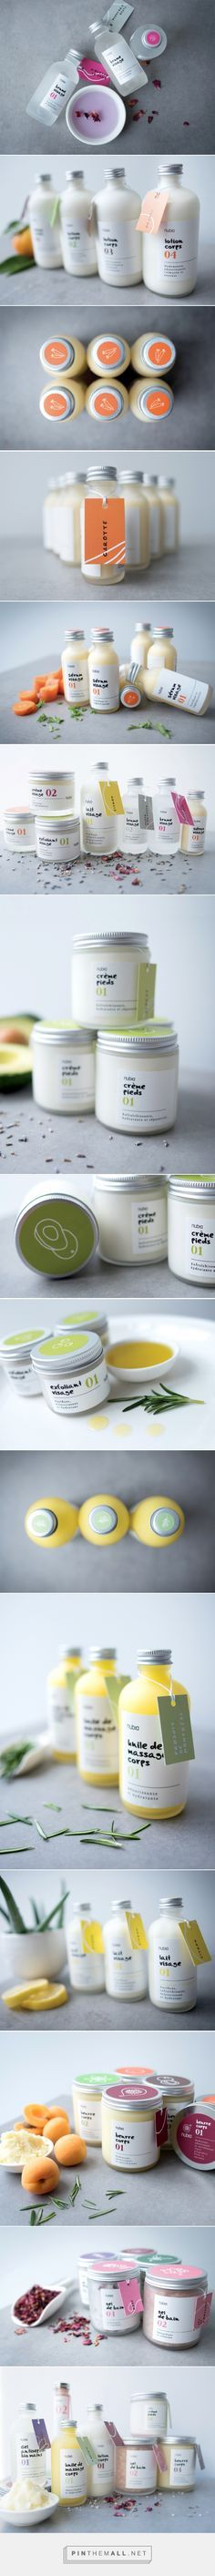 Nubia Spa Vert / Packaging for a new skin-care line line using natural 100% bio ingredients by Alex Nereuta